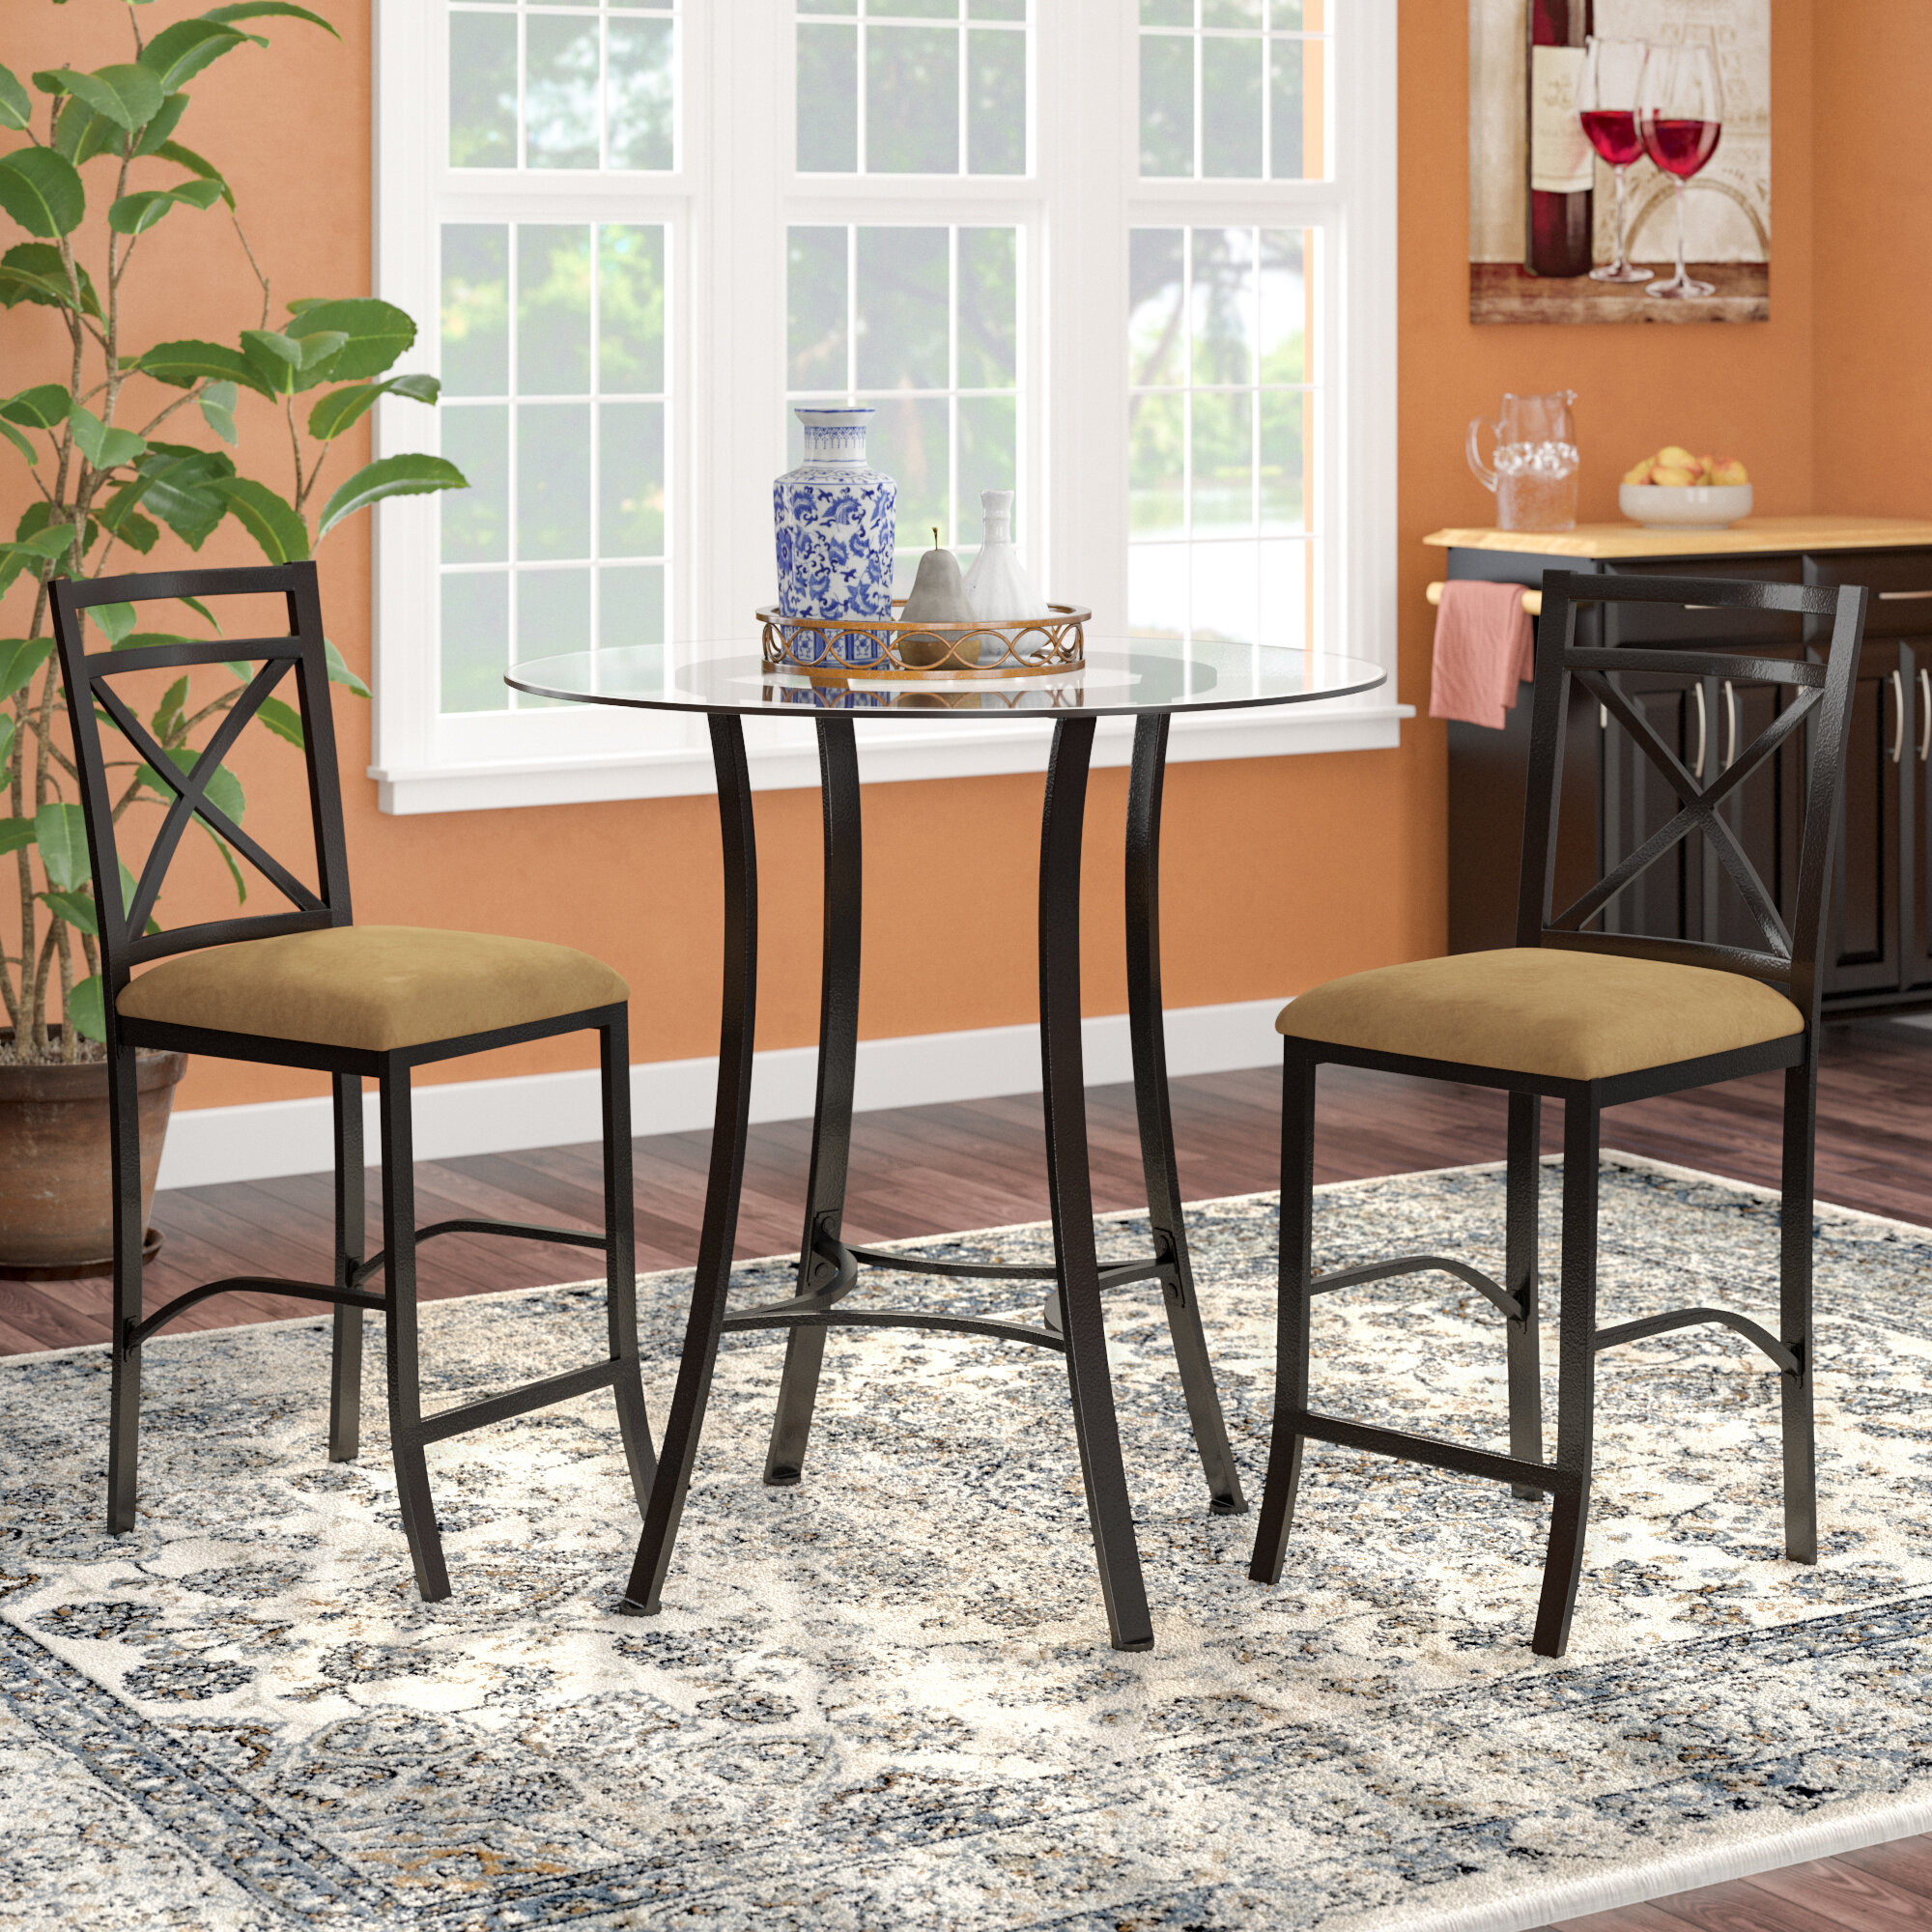 Details About Winston Porter Saleh 3 Piece Counter Height Dining Set Within Most Recent Mizpah 3 Piece Counter Height Dining Sets (Image 10 of 20)